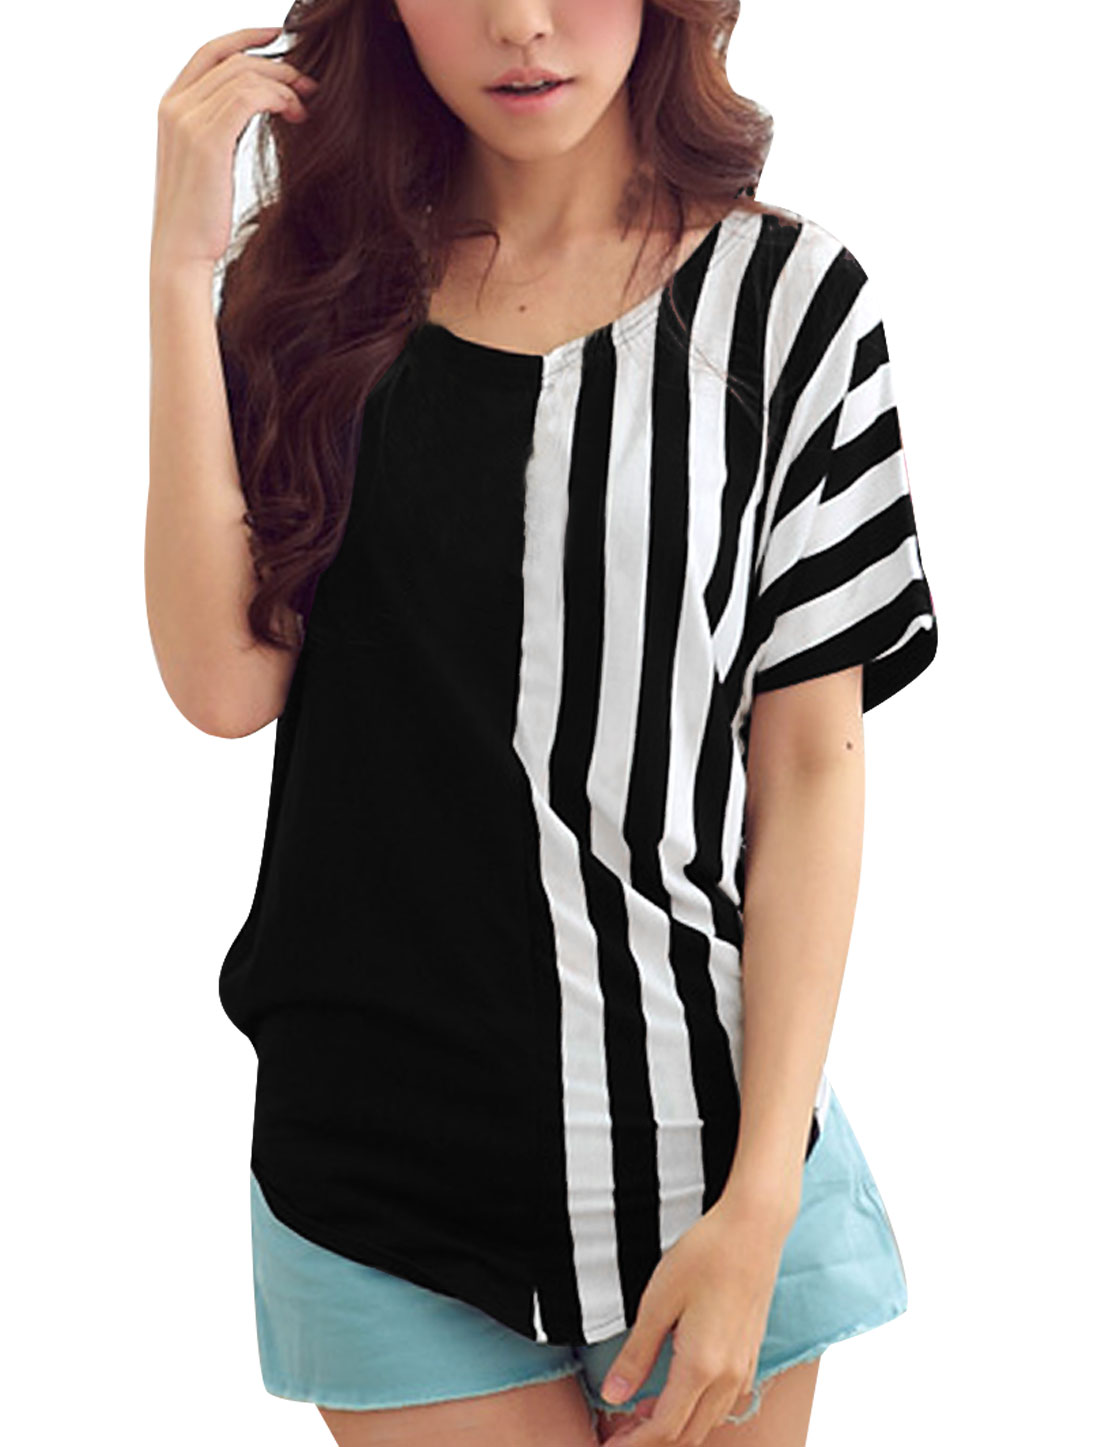 Ladies Black Scoop Neck Contrast Stripes Casual Pullover Tee Shirt S